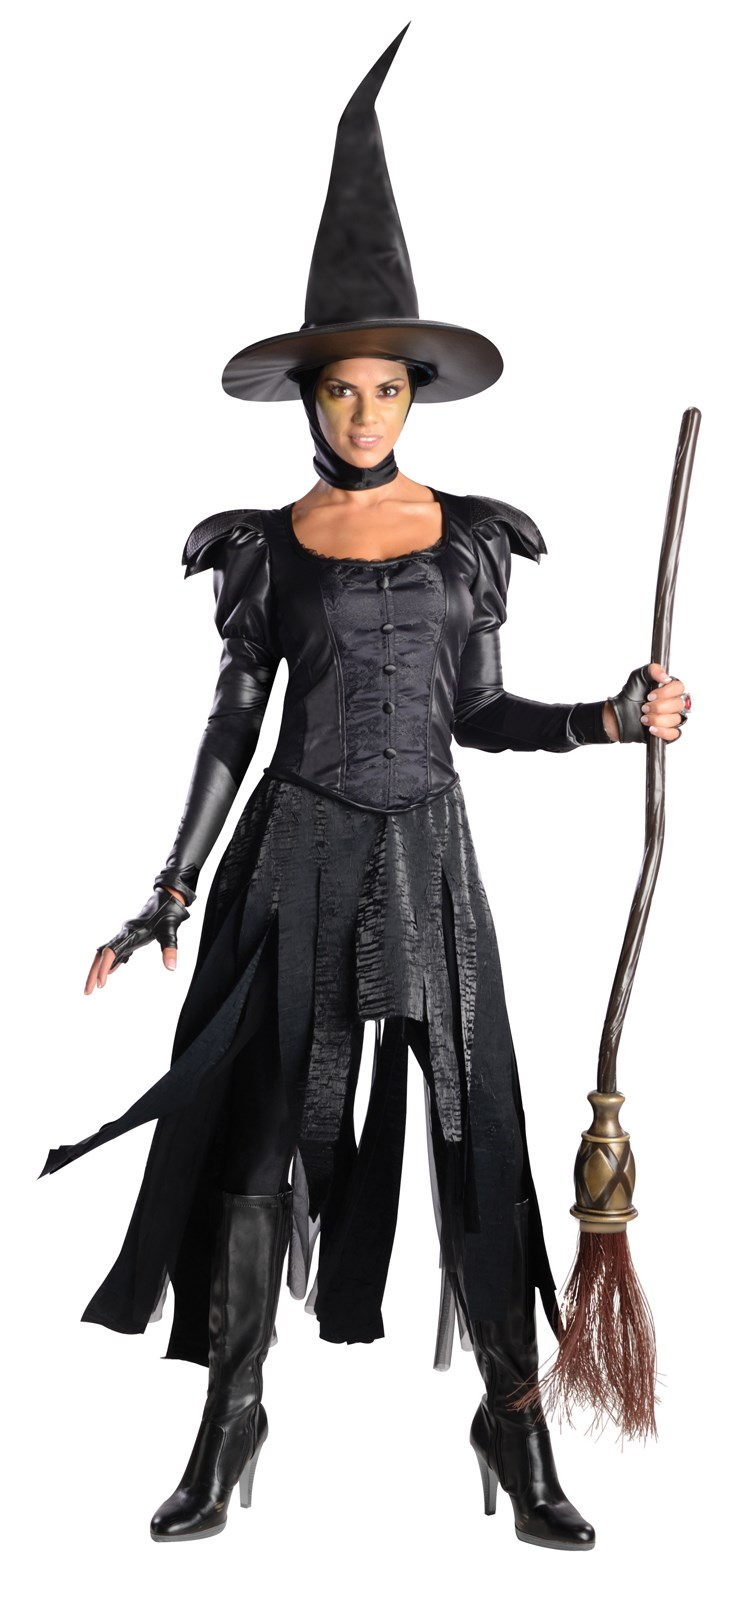 Oz The Great And Powerful Deluxe Wicked Witch of the West Adult Costume